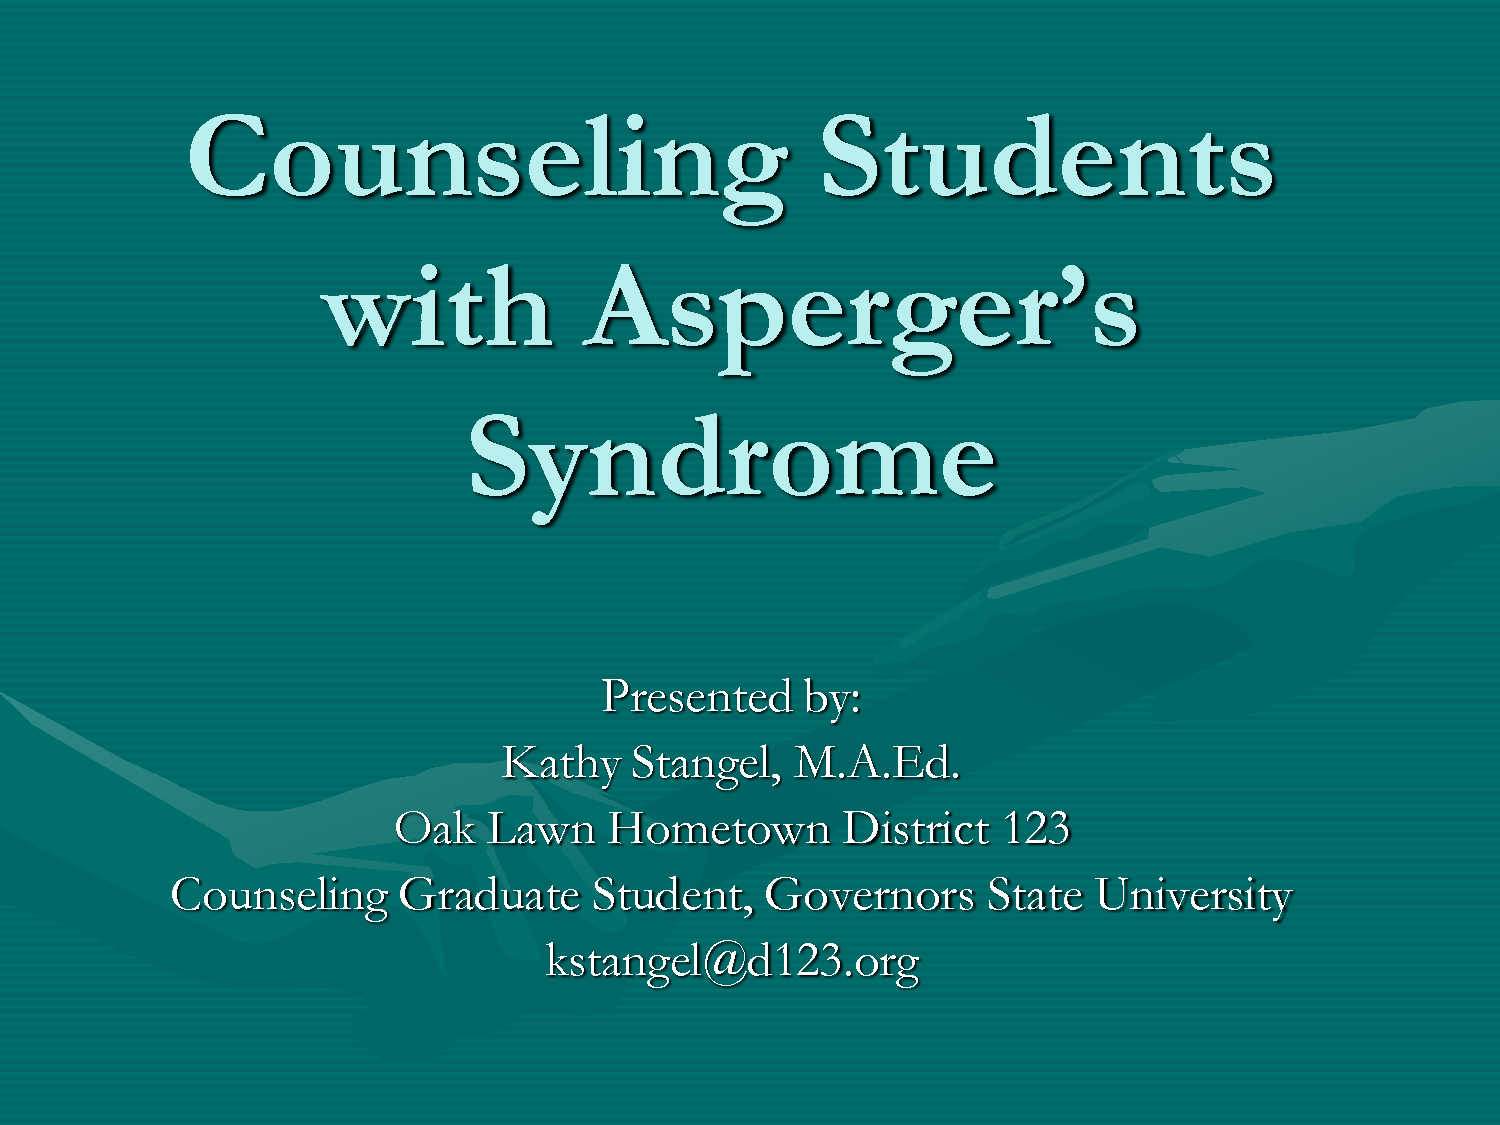 asperger syndrome 3 Asperger syndrome (as) is an autism spectrum disorder (asd) and part of a unique group of neurodevelopment disorders, all complex those affected by it suffer social impairment, difficulty.